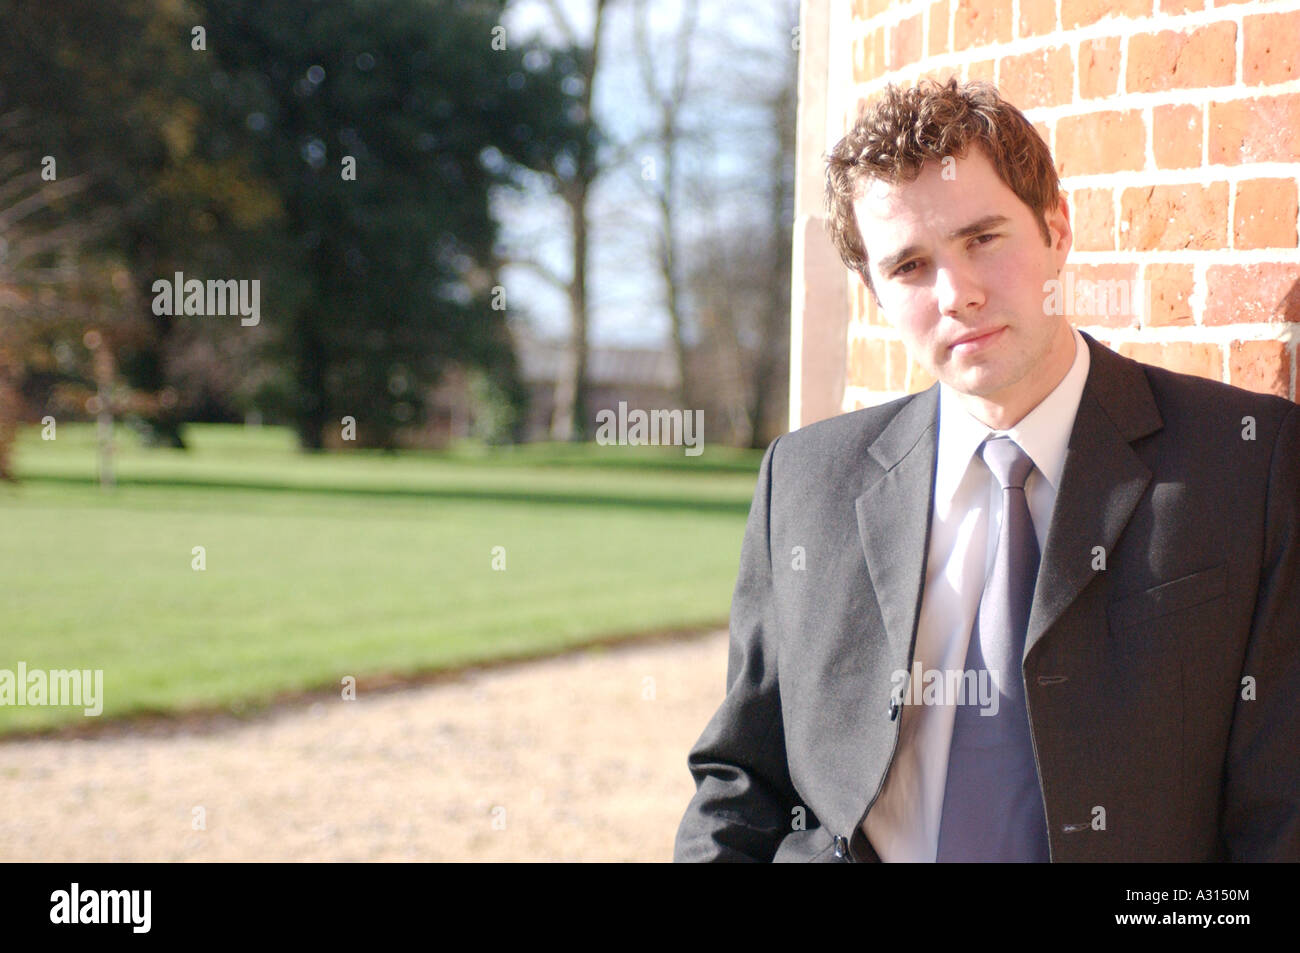 Royalty free photograph of British young business man outside office London UK - Stock Image